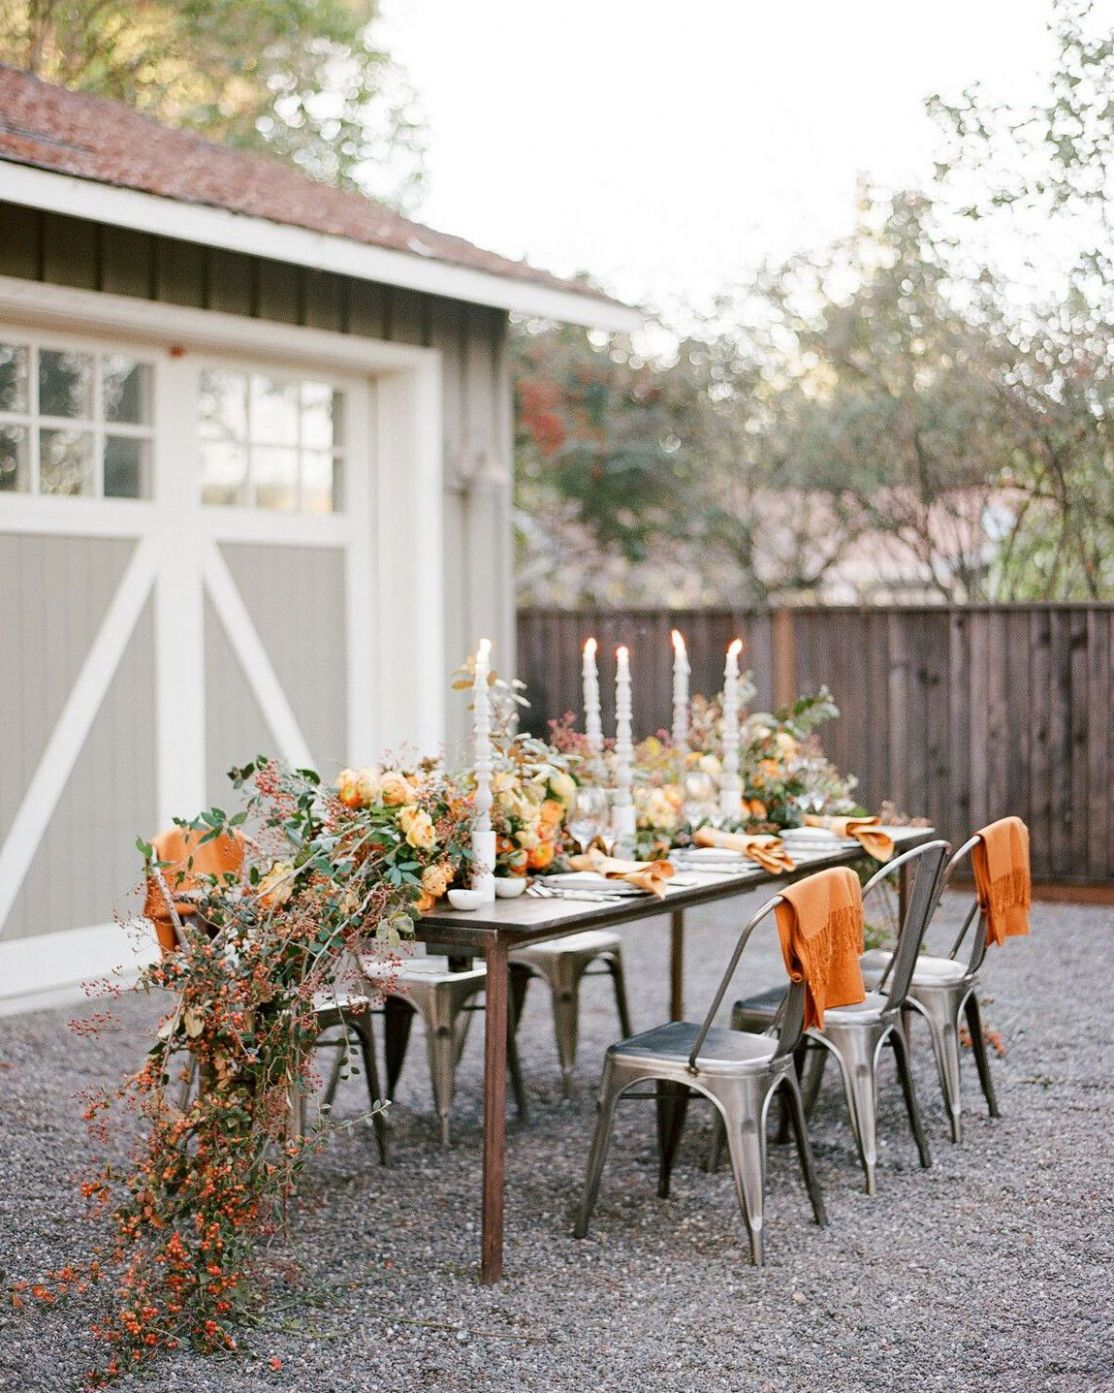 12 Unique Ideas for Your Fall Engagement Party | Backyard ..